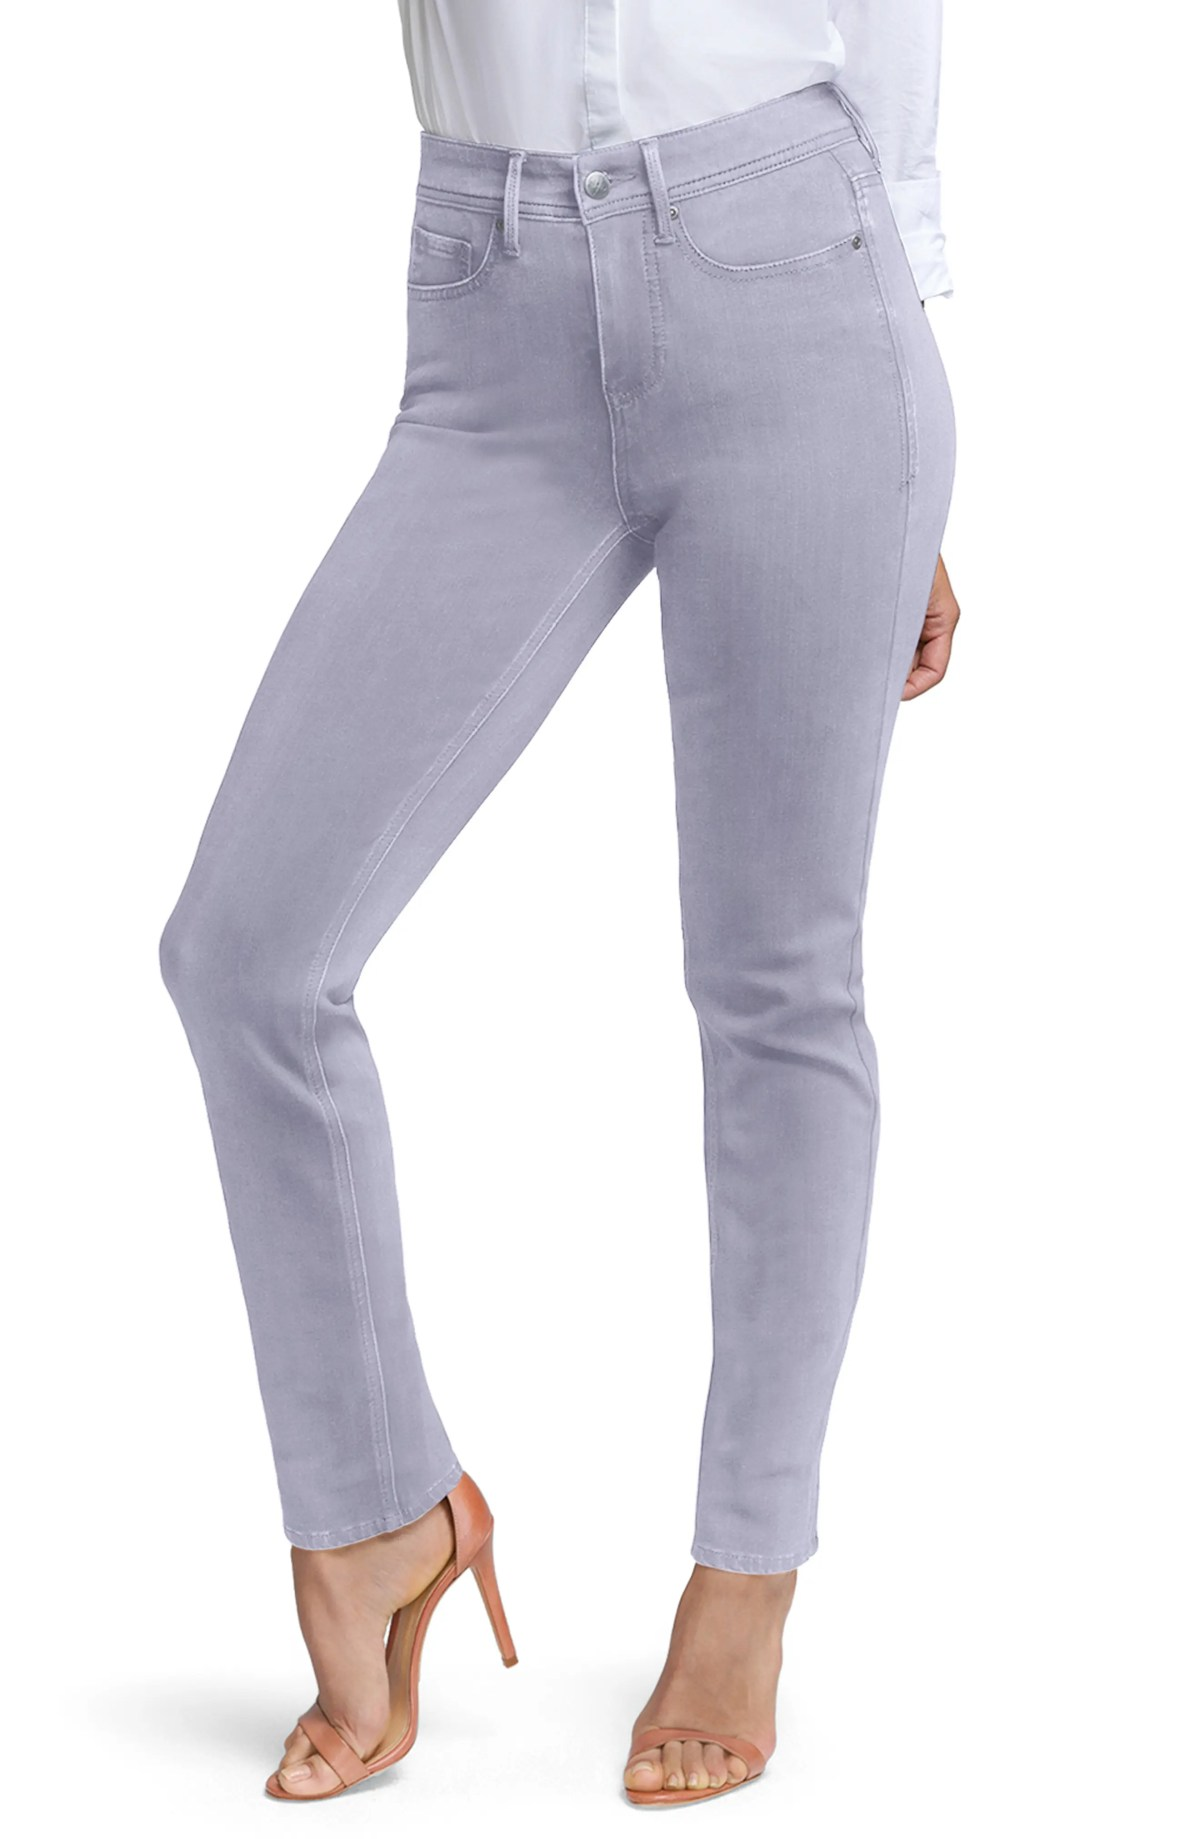 CURVES 360 BY NYDJ Slim Straight Leg Ankle Jeans, Main, color, MINERAL PIGMENT